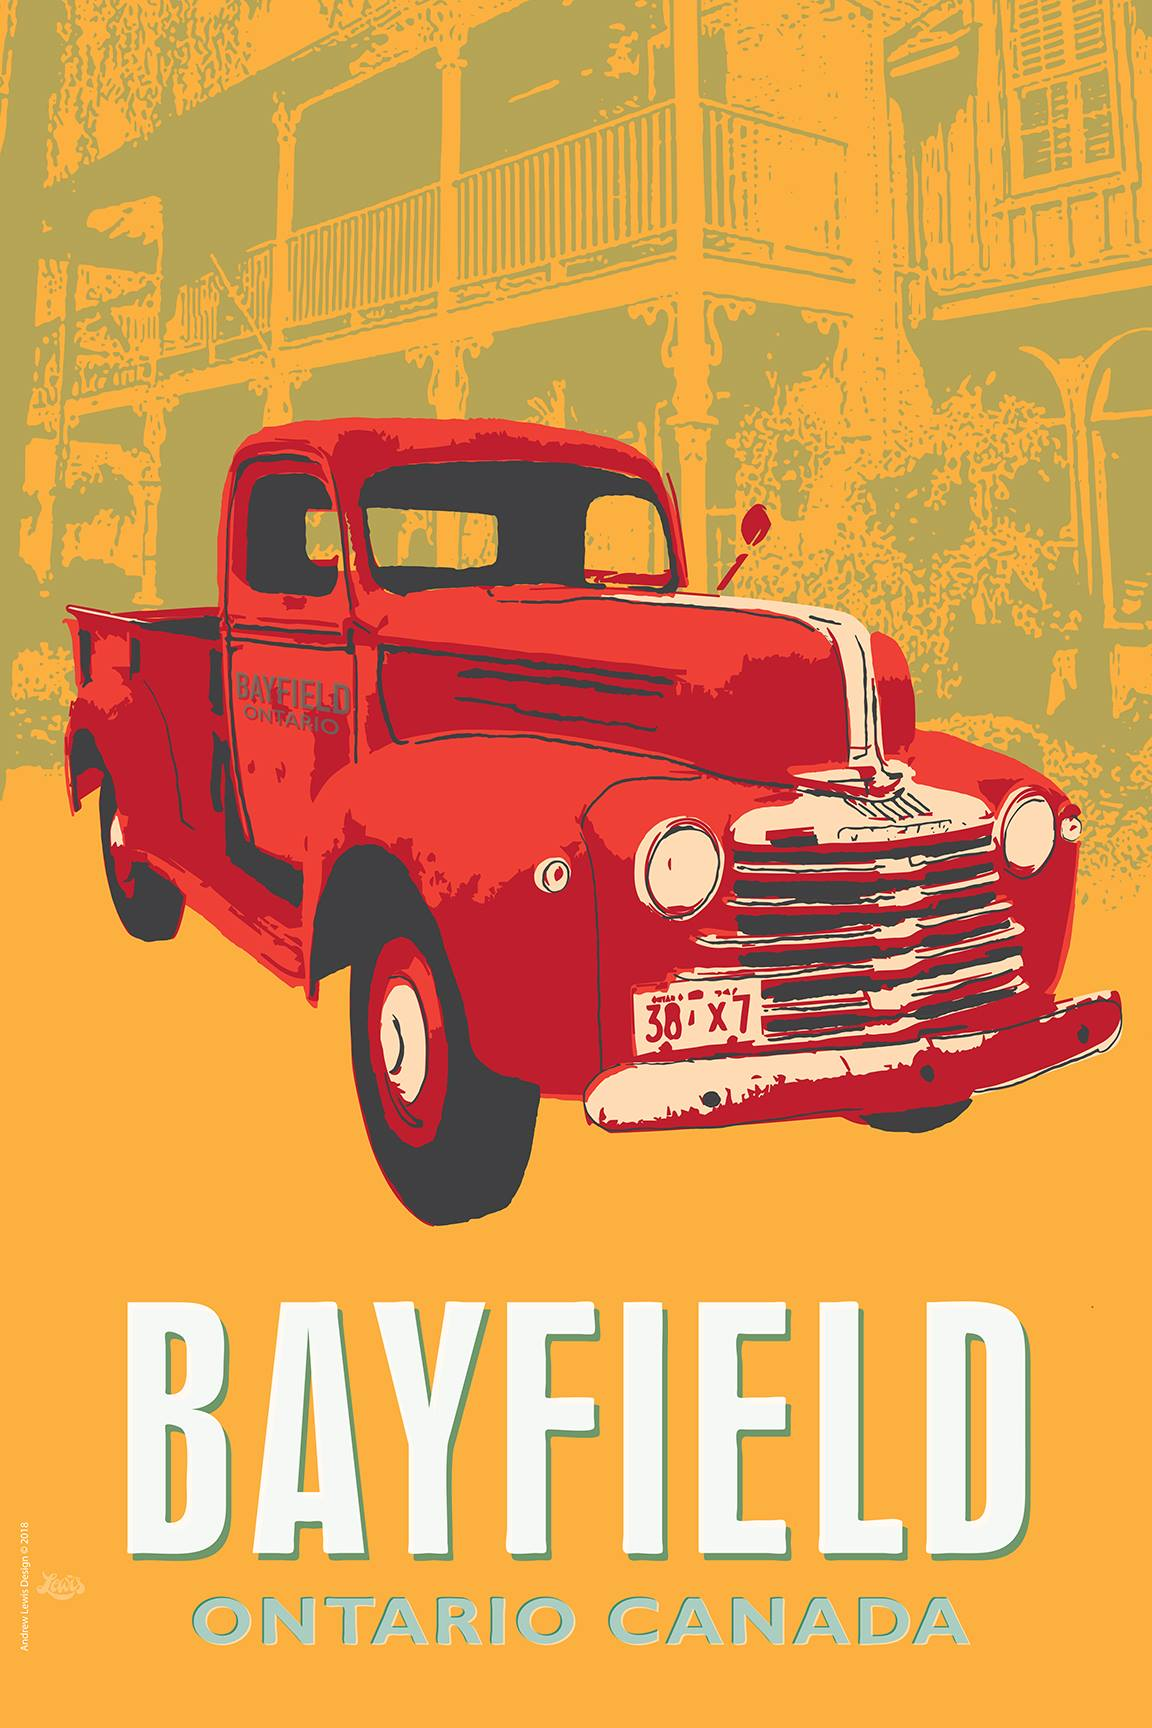 Little Inn Truck: Bayfield